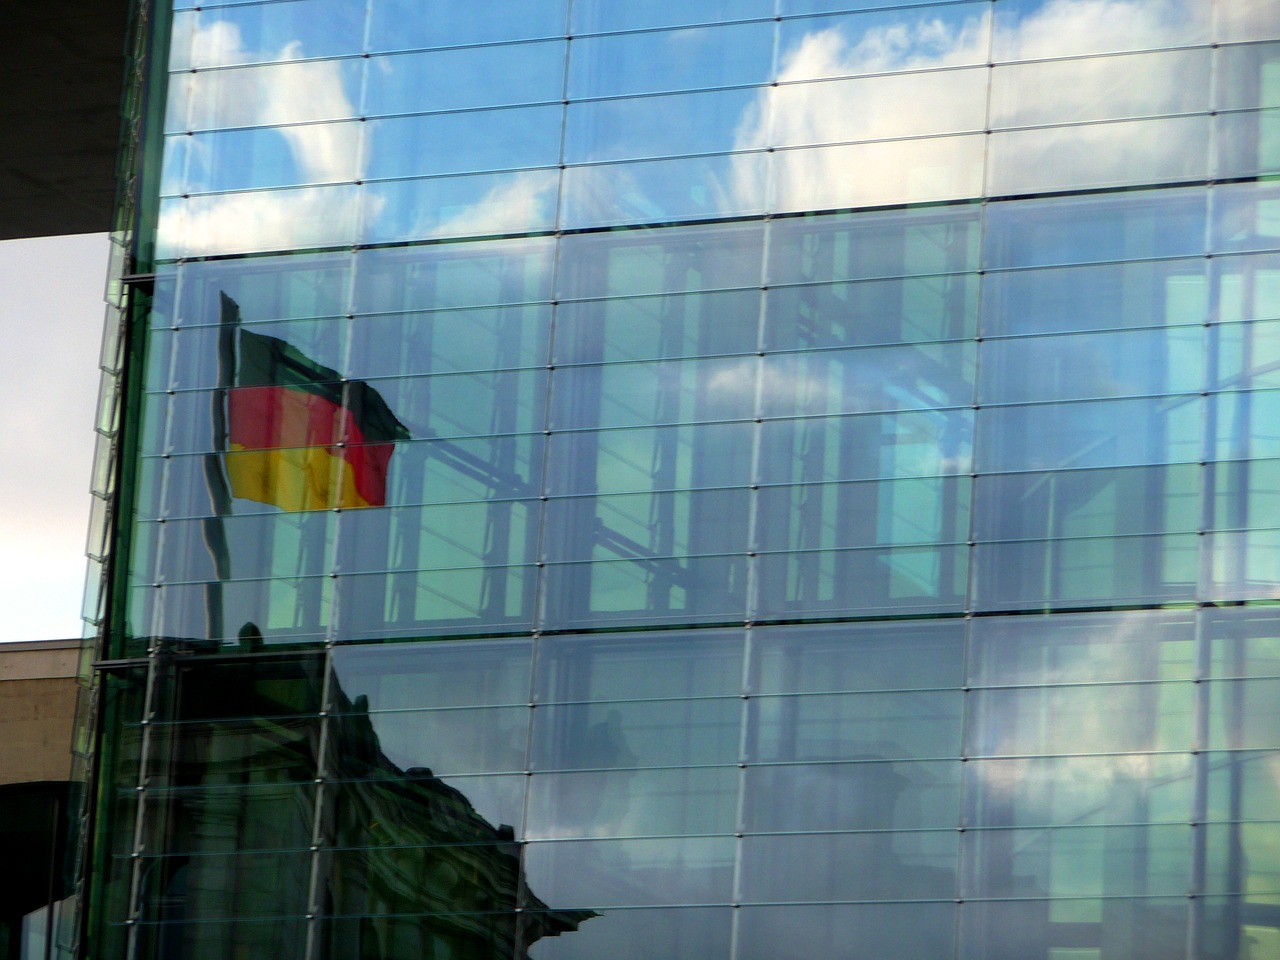 germany flag,flag,mirroring,facade,building,architecture,germany,black red gold,background,german flag,home,national colours,national flag,symbol,free pictures, free photos, free images, royalty free, free illustrations, public domain